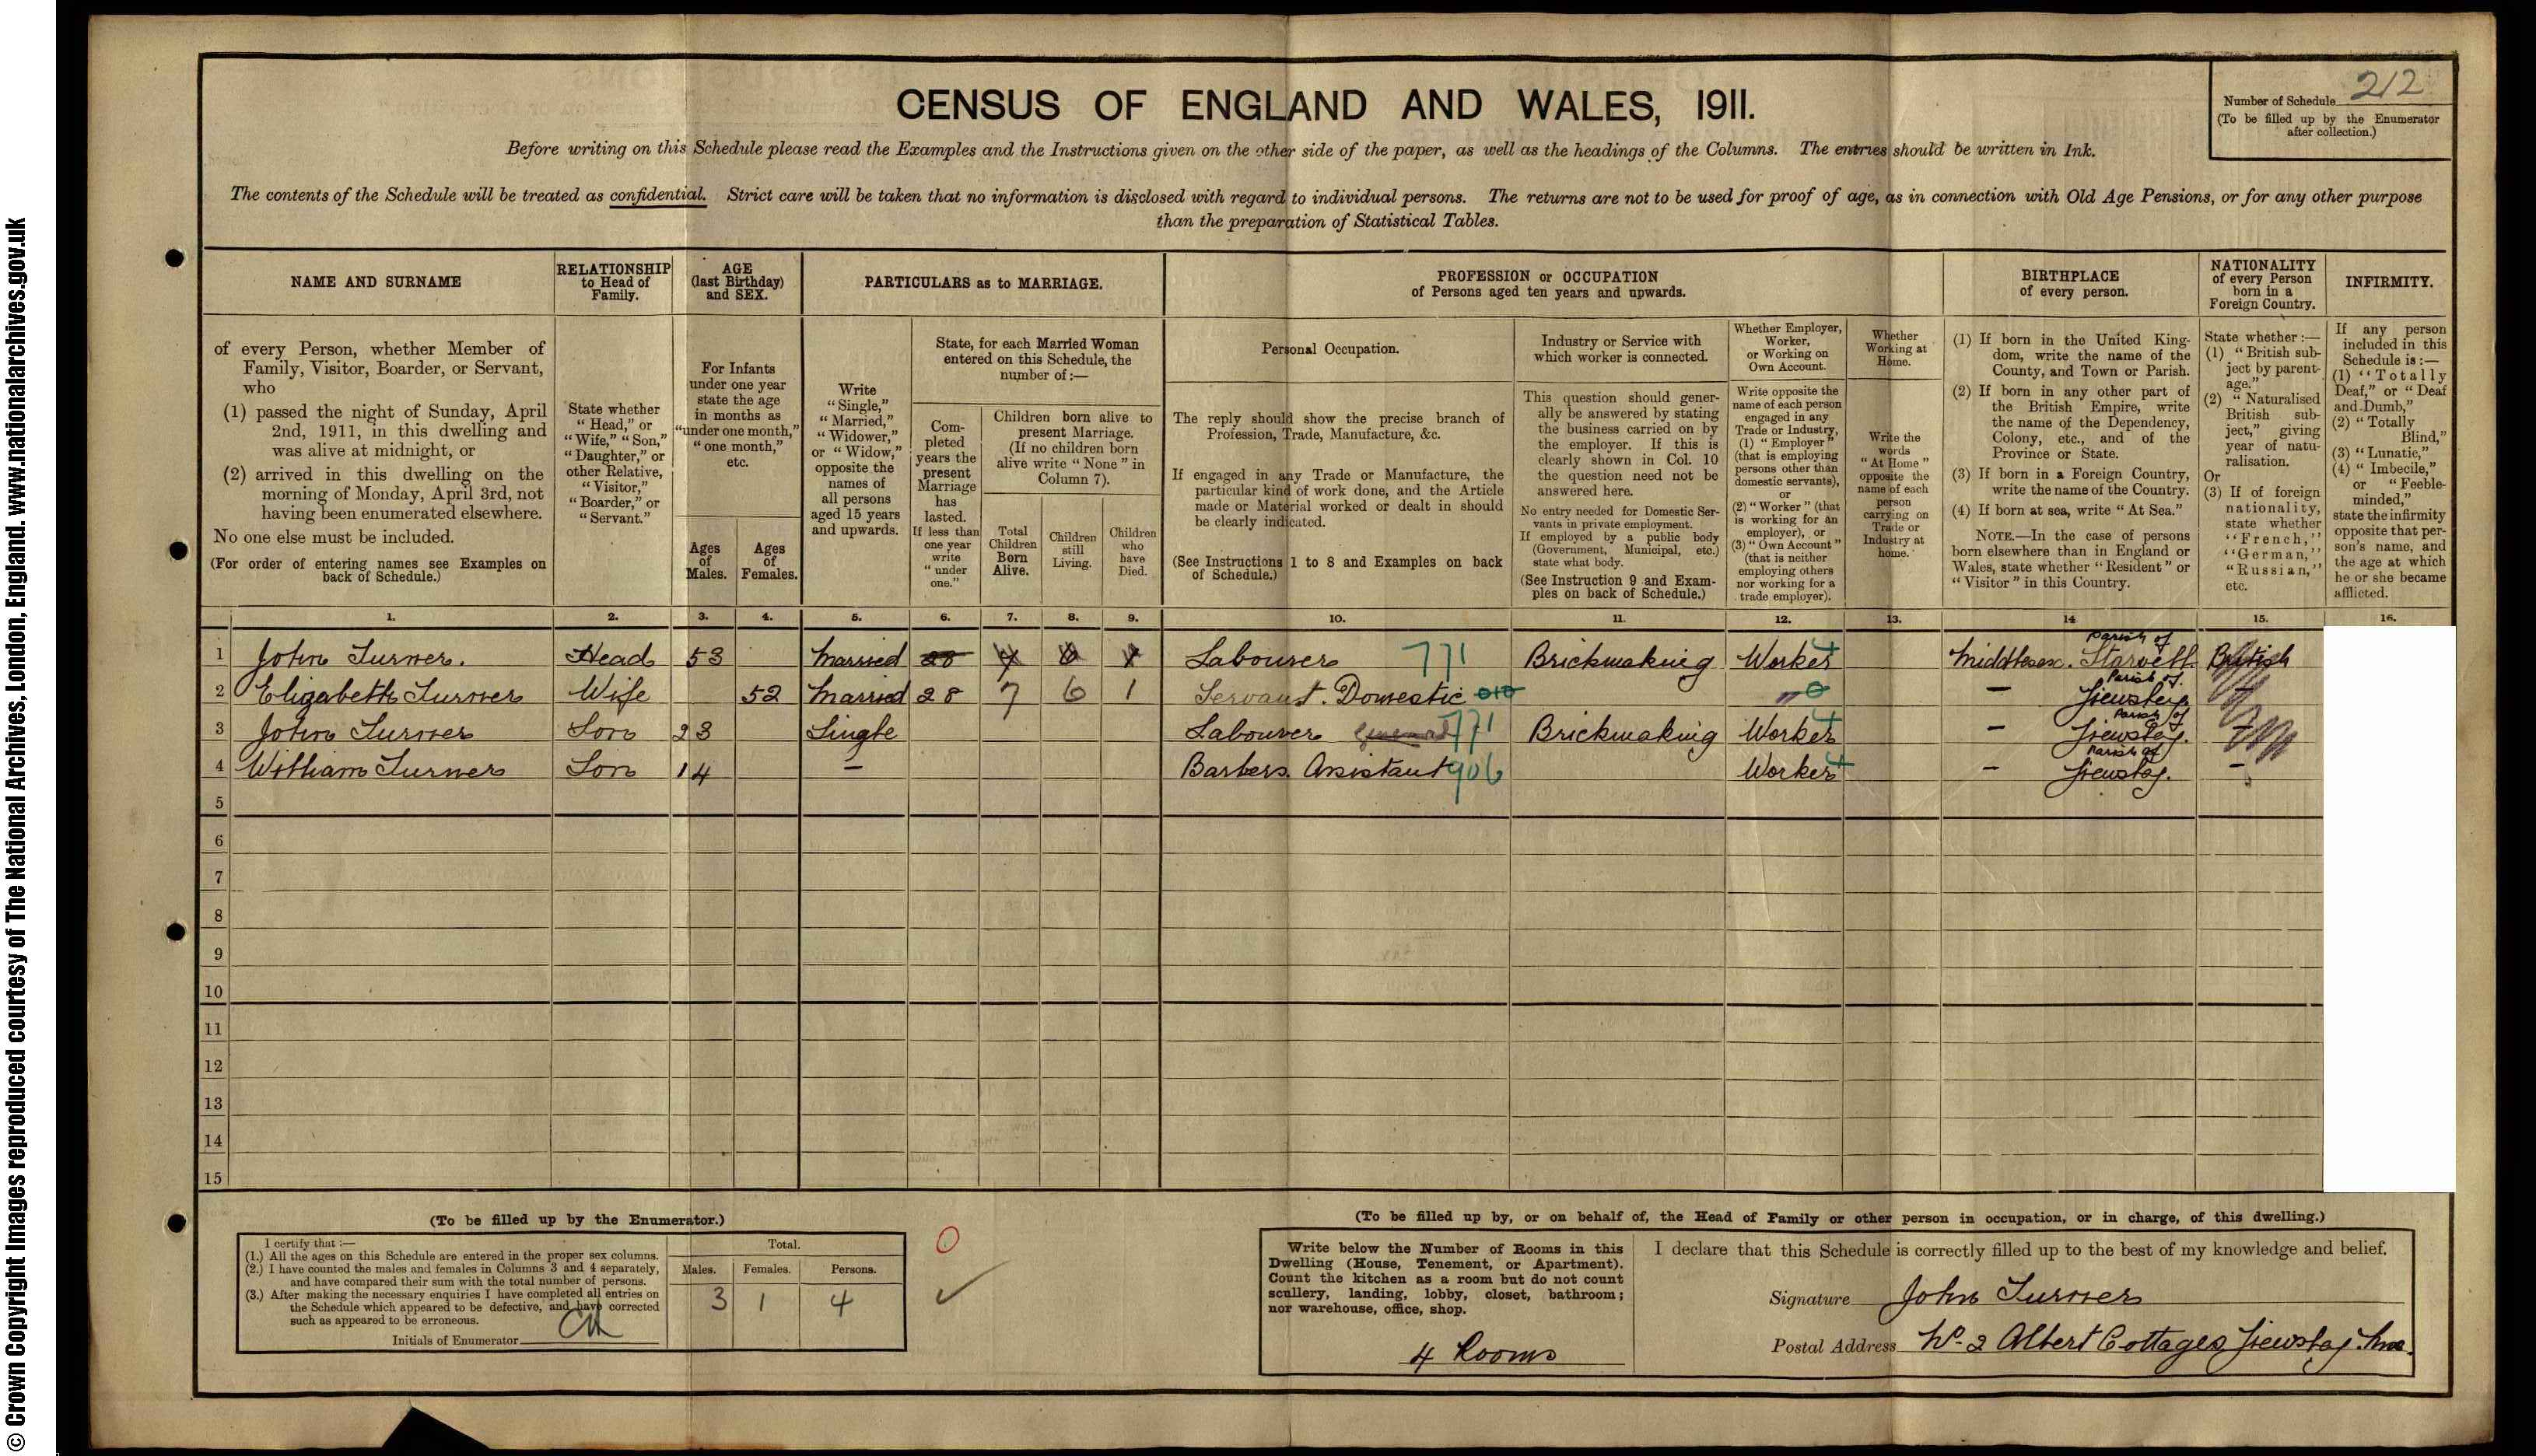 1911 England Census Record for John Turner